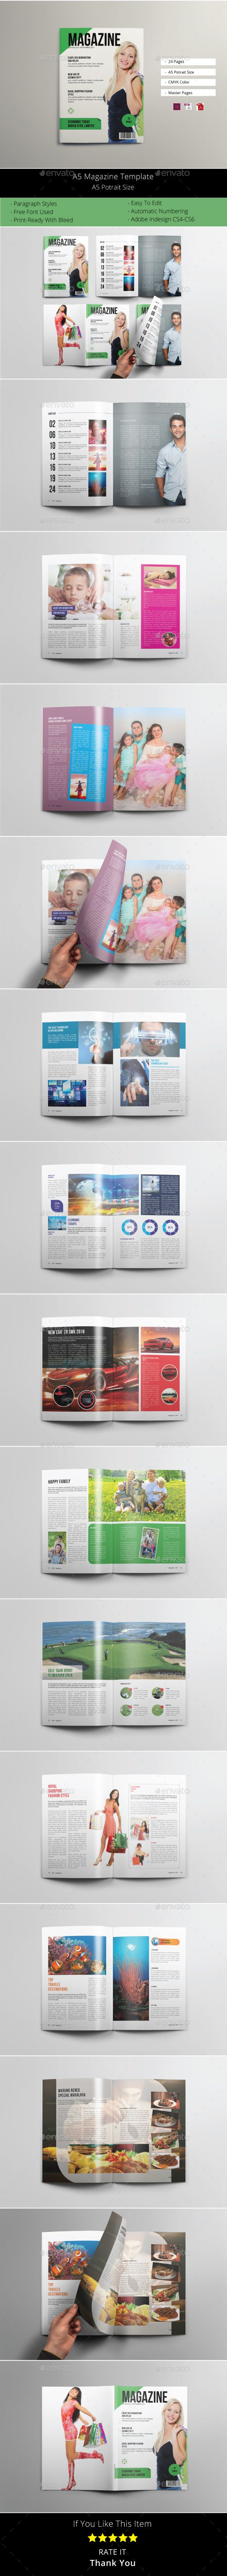 92 best Magazine Layout images on Pinterest | Brochure template ...